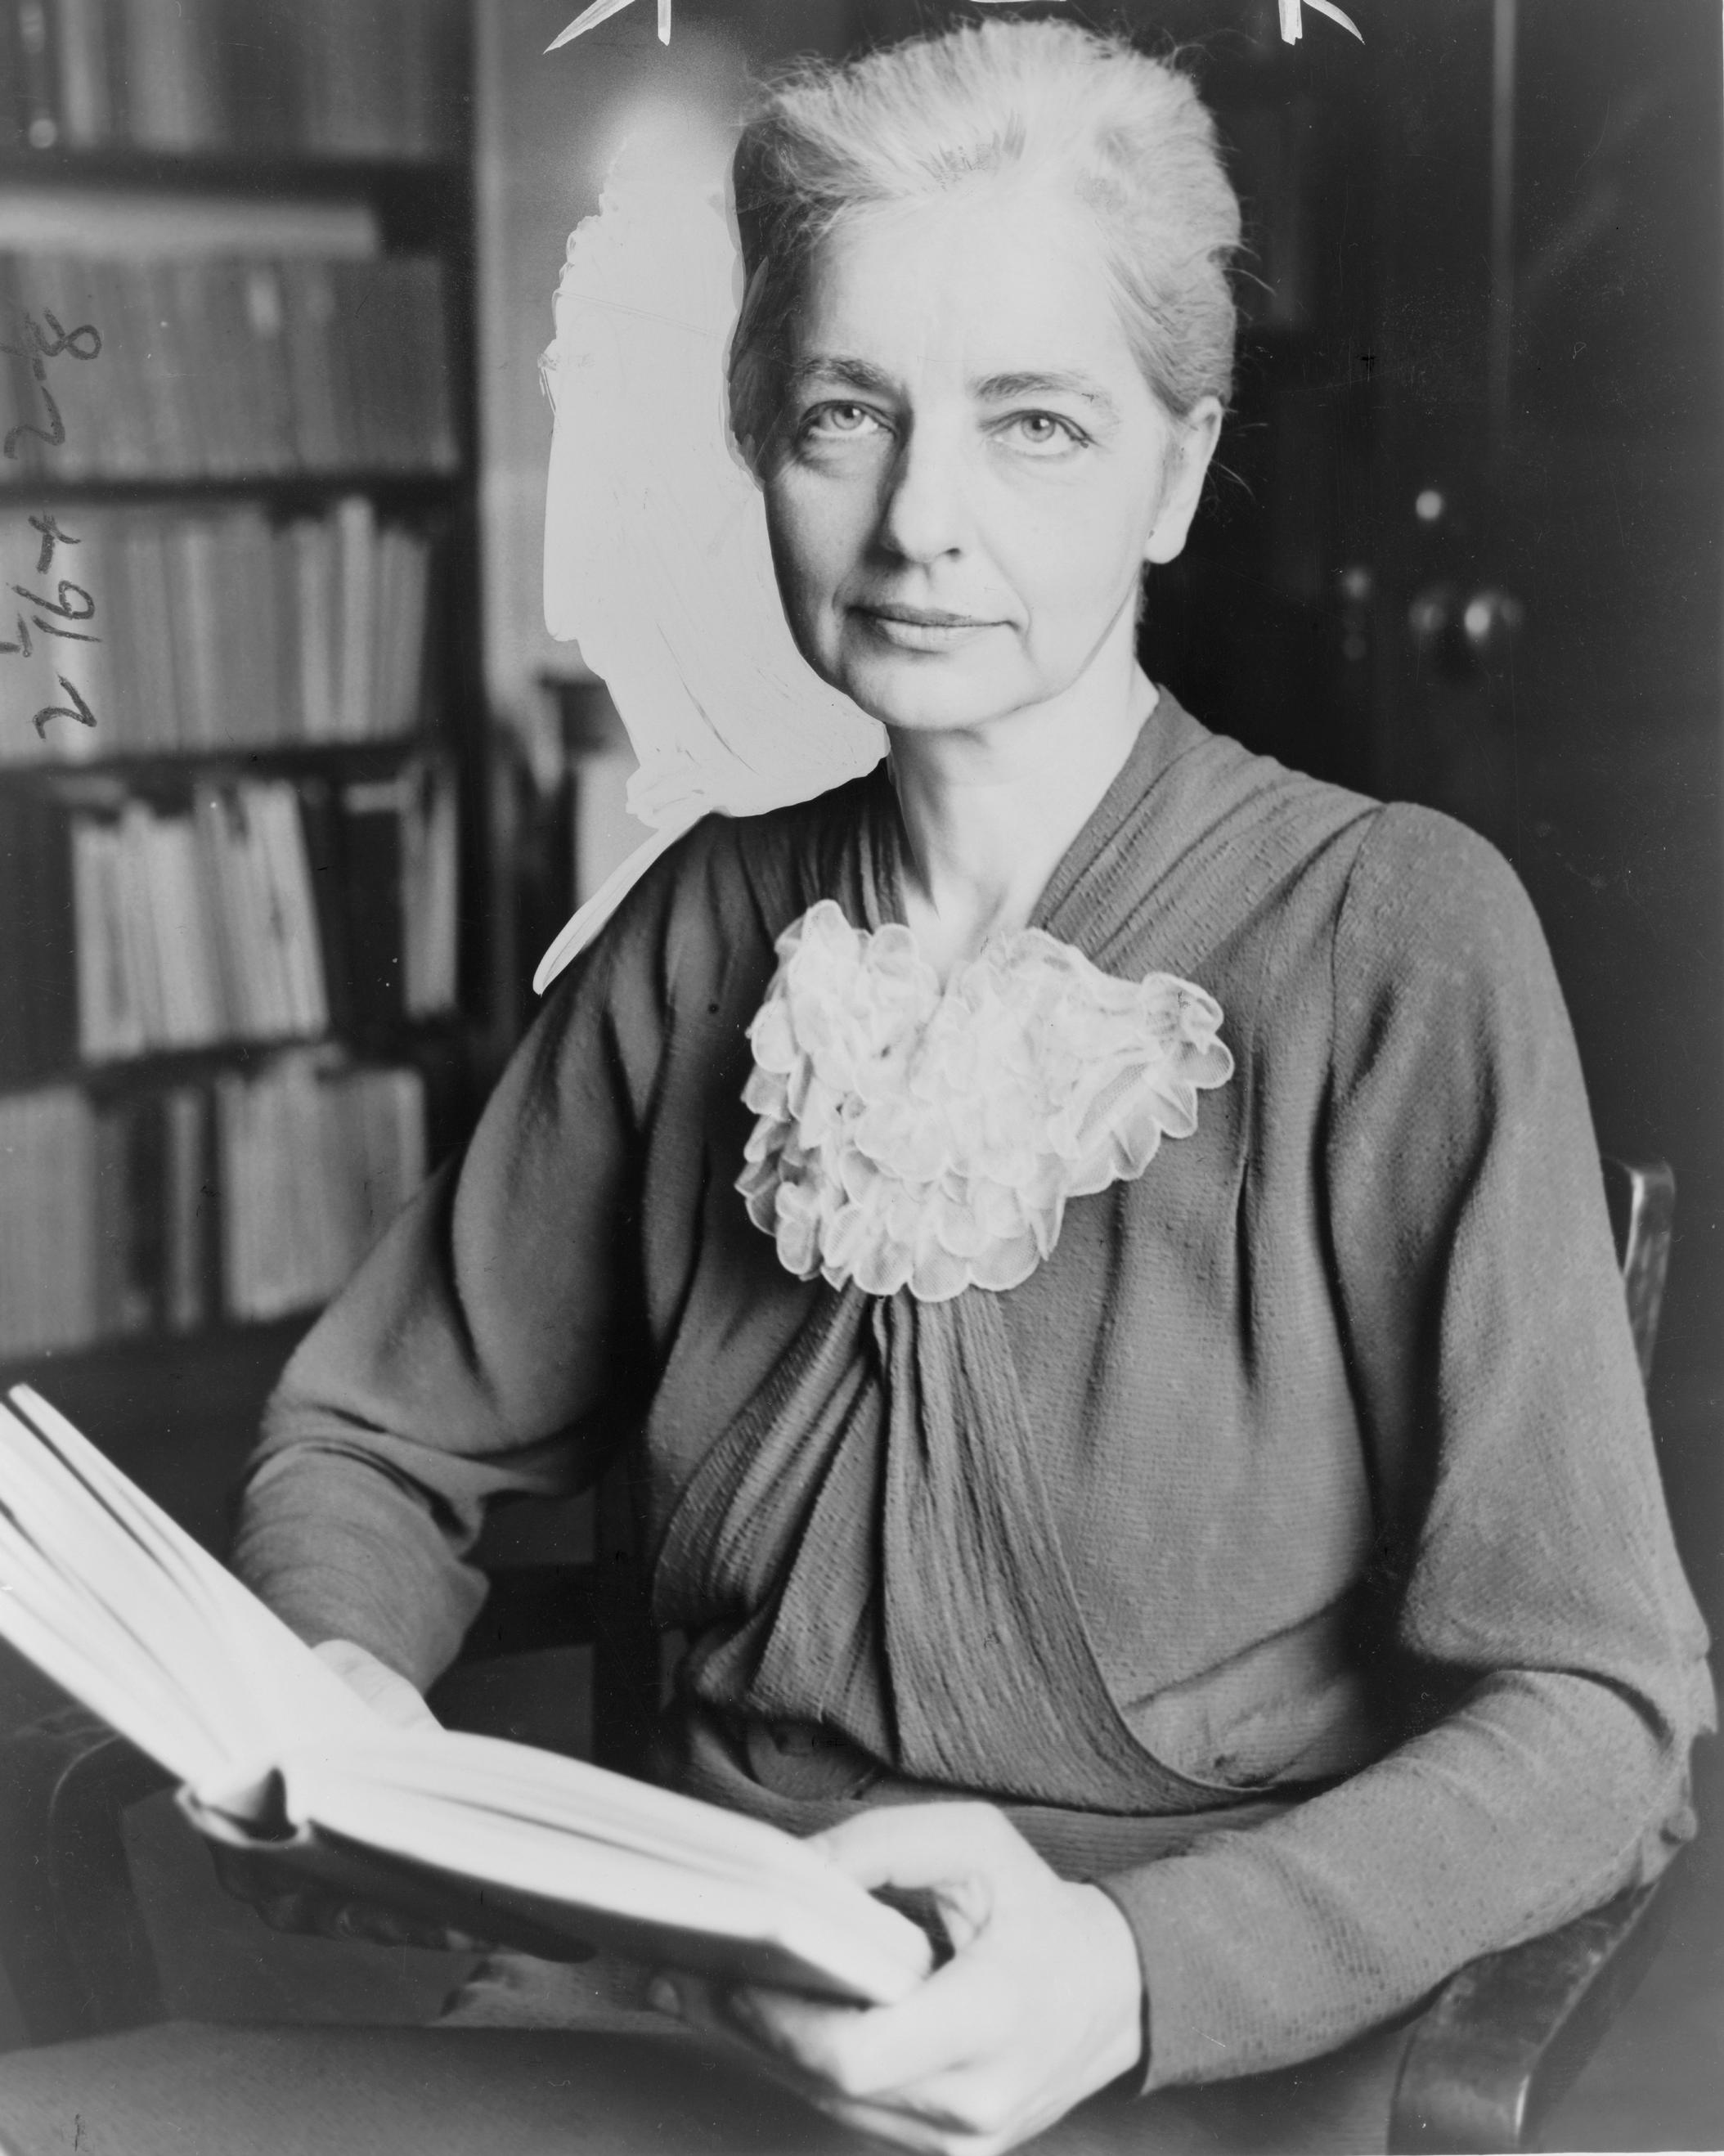 Ruth Benedict  By World Telegram staff photographer - Library of Congress. New York World-Telegram & Sun Collection. http://hdl.loc.gov/loc.pnp/cph.3c14649, Public Domain, https://commons.wikimedia.org/w/index.php?curid=1276865